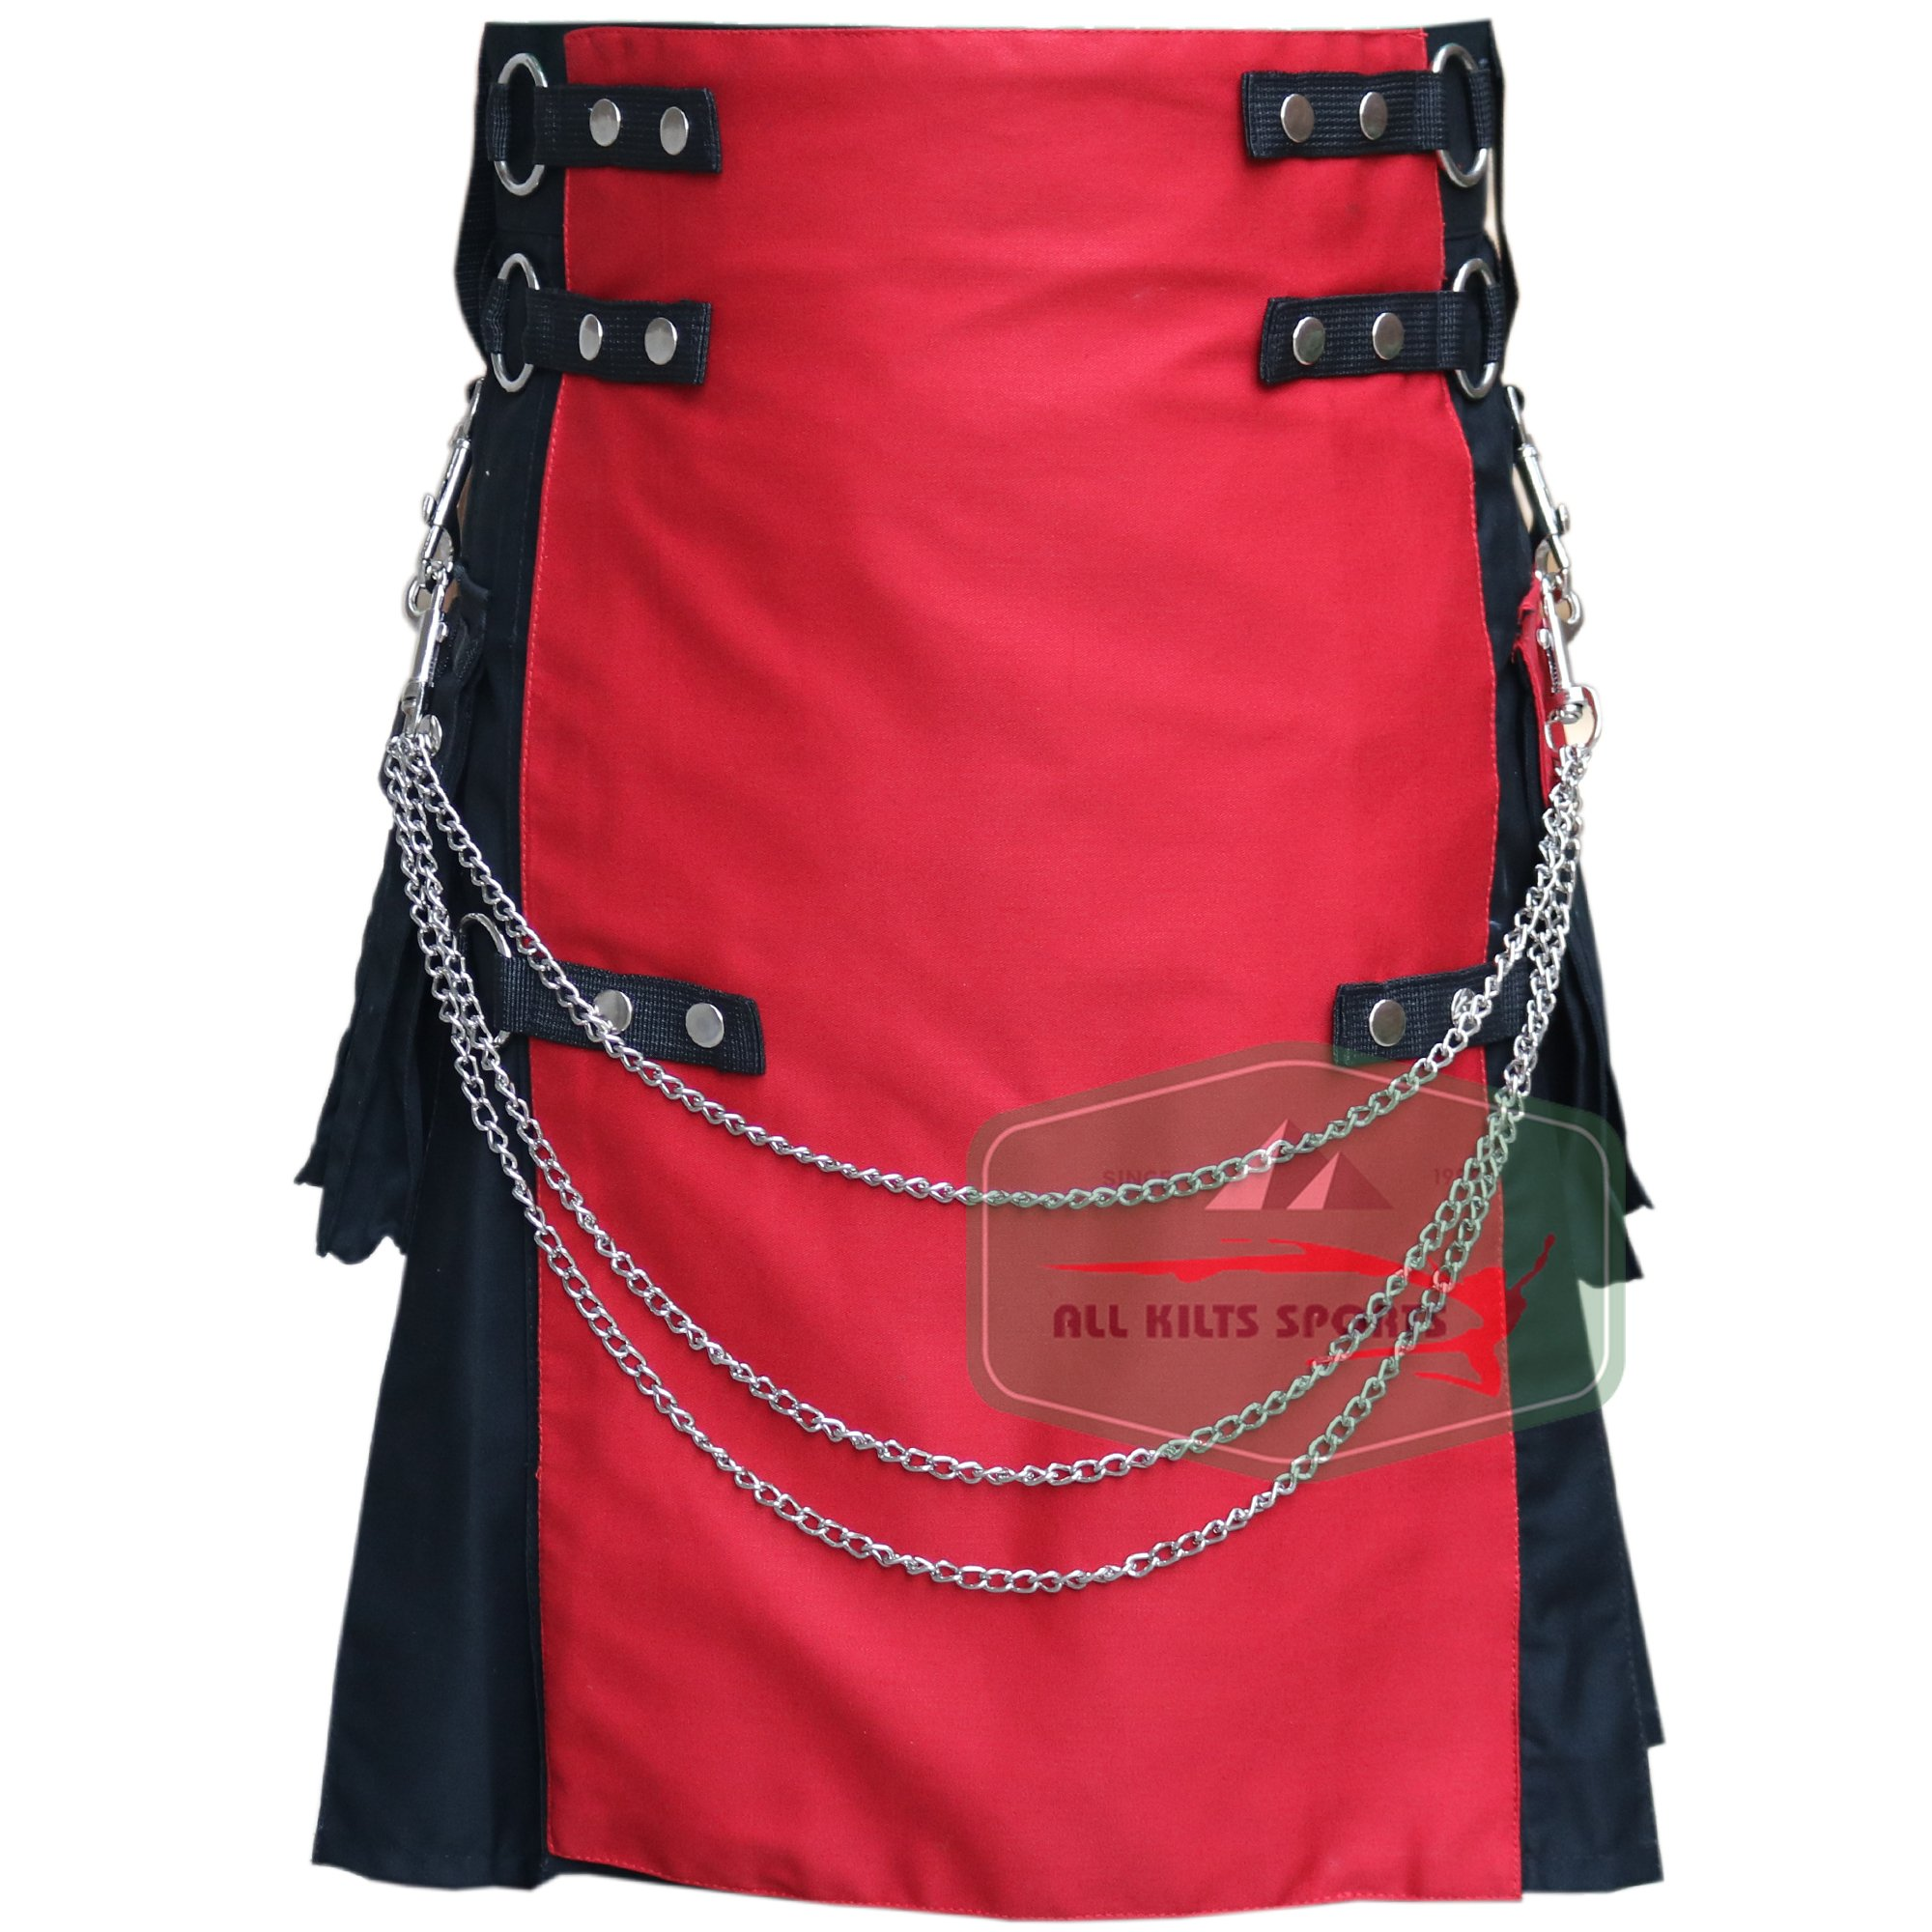 Black Fashion Wedding Ring Kilt With Red Front Apron - Utility Kilts (38'')